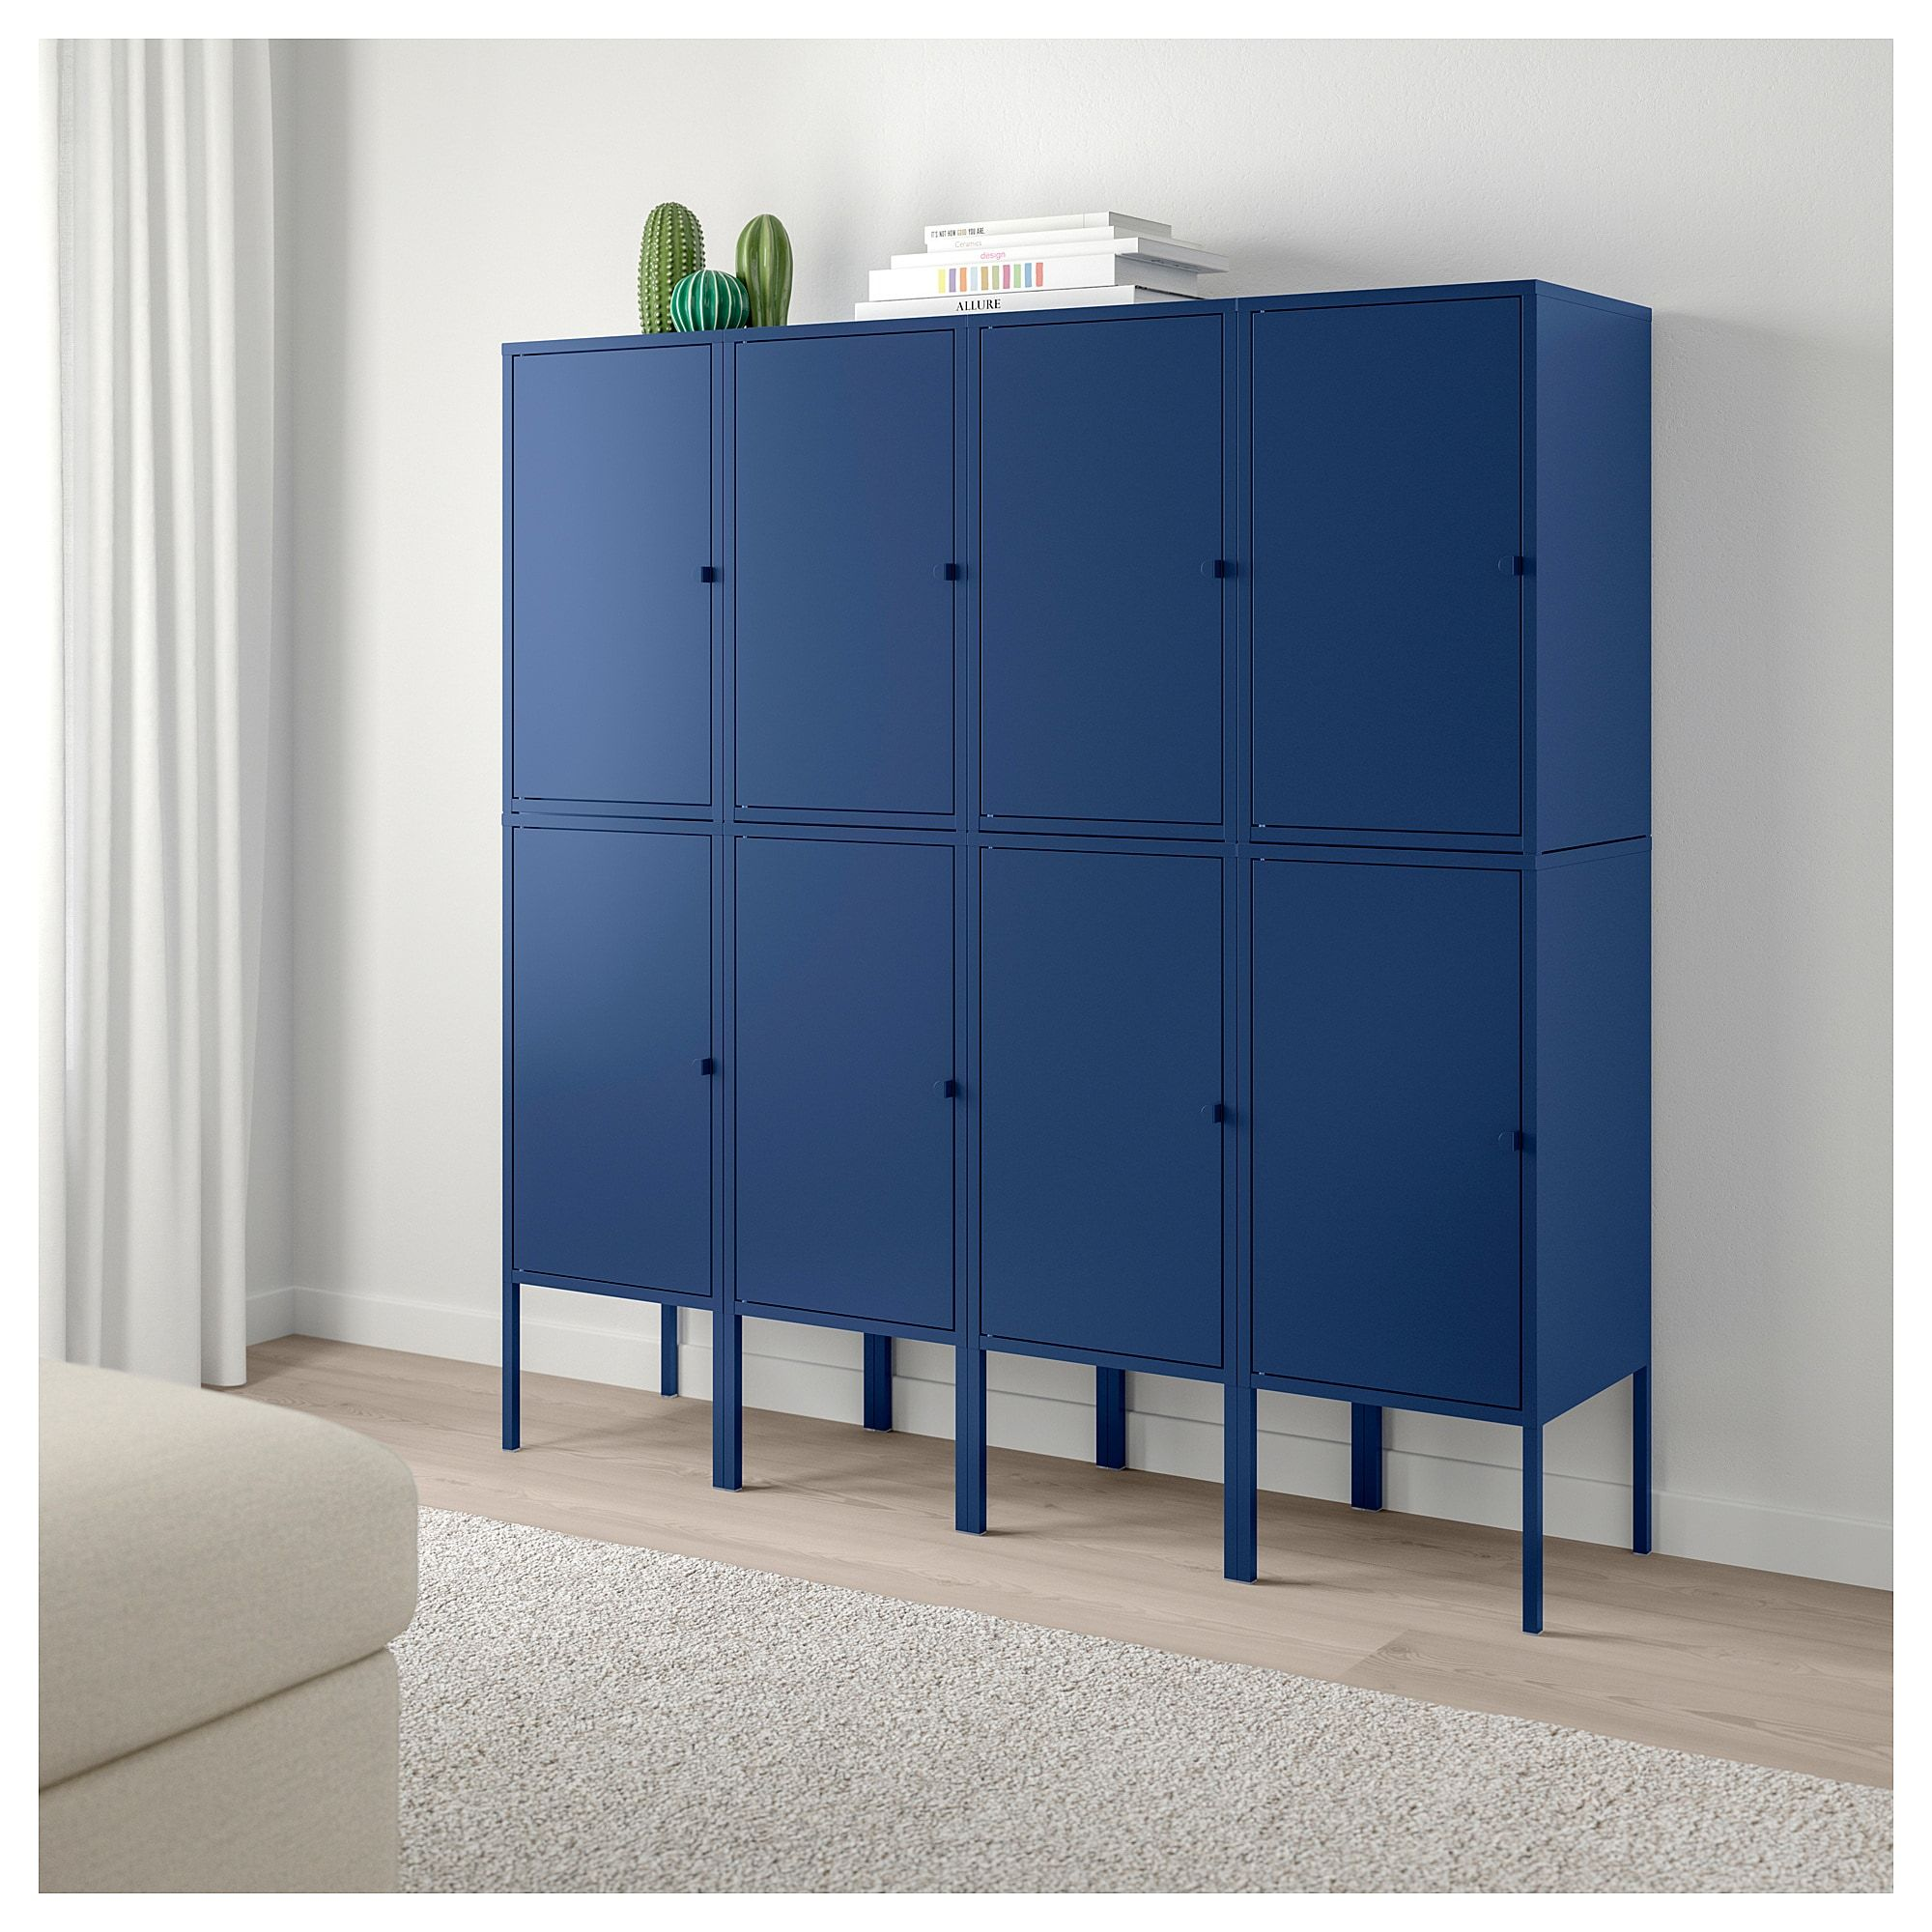 Ikea Storage Cabinets Lixhult Storage Combination Dark Blue Architectural Elements